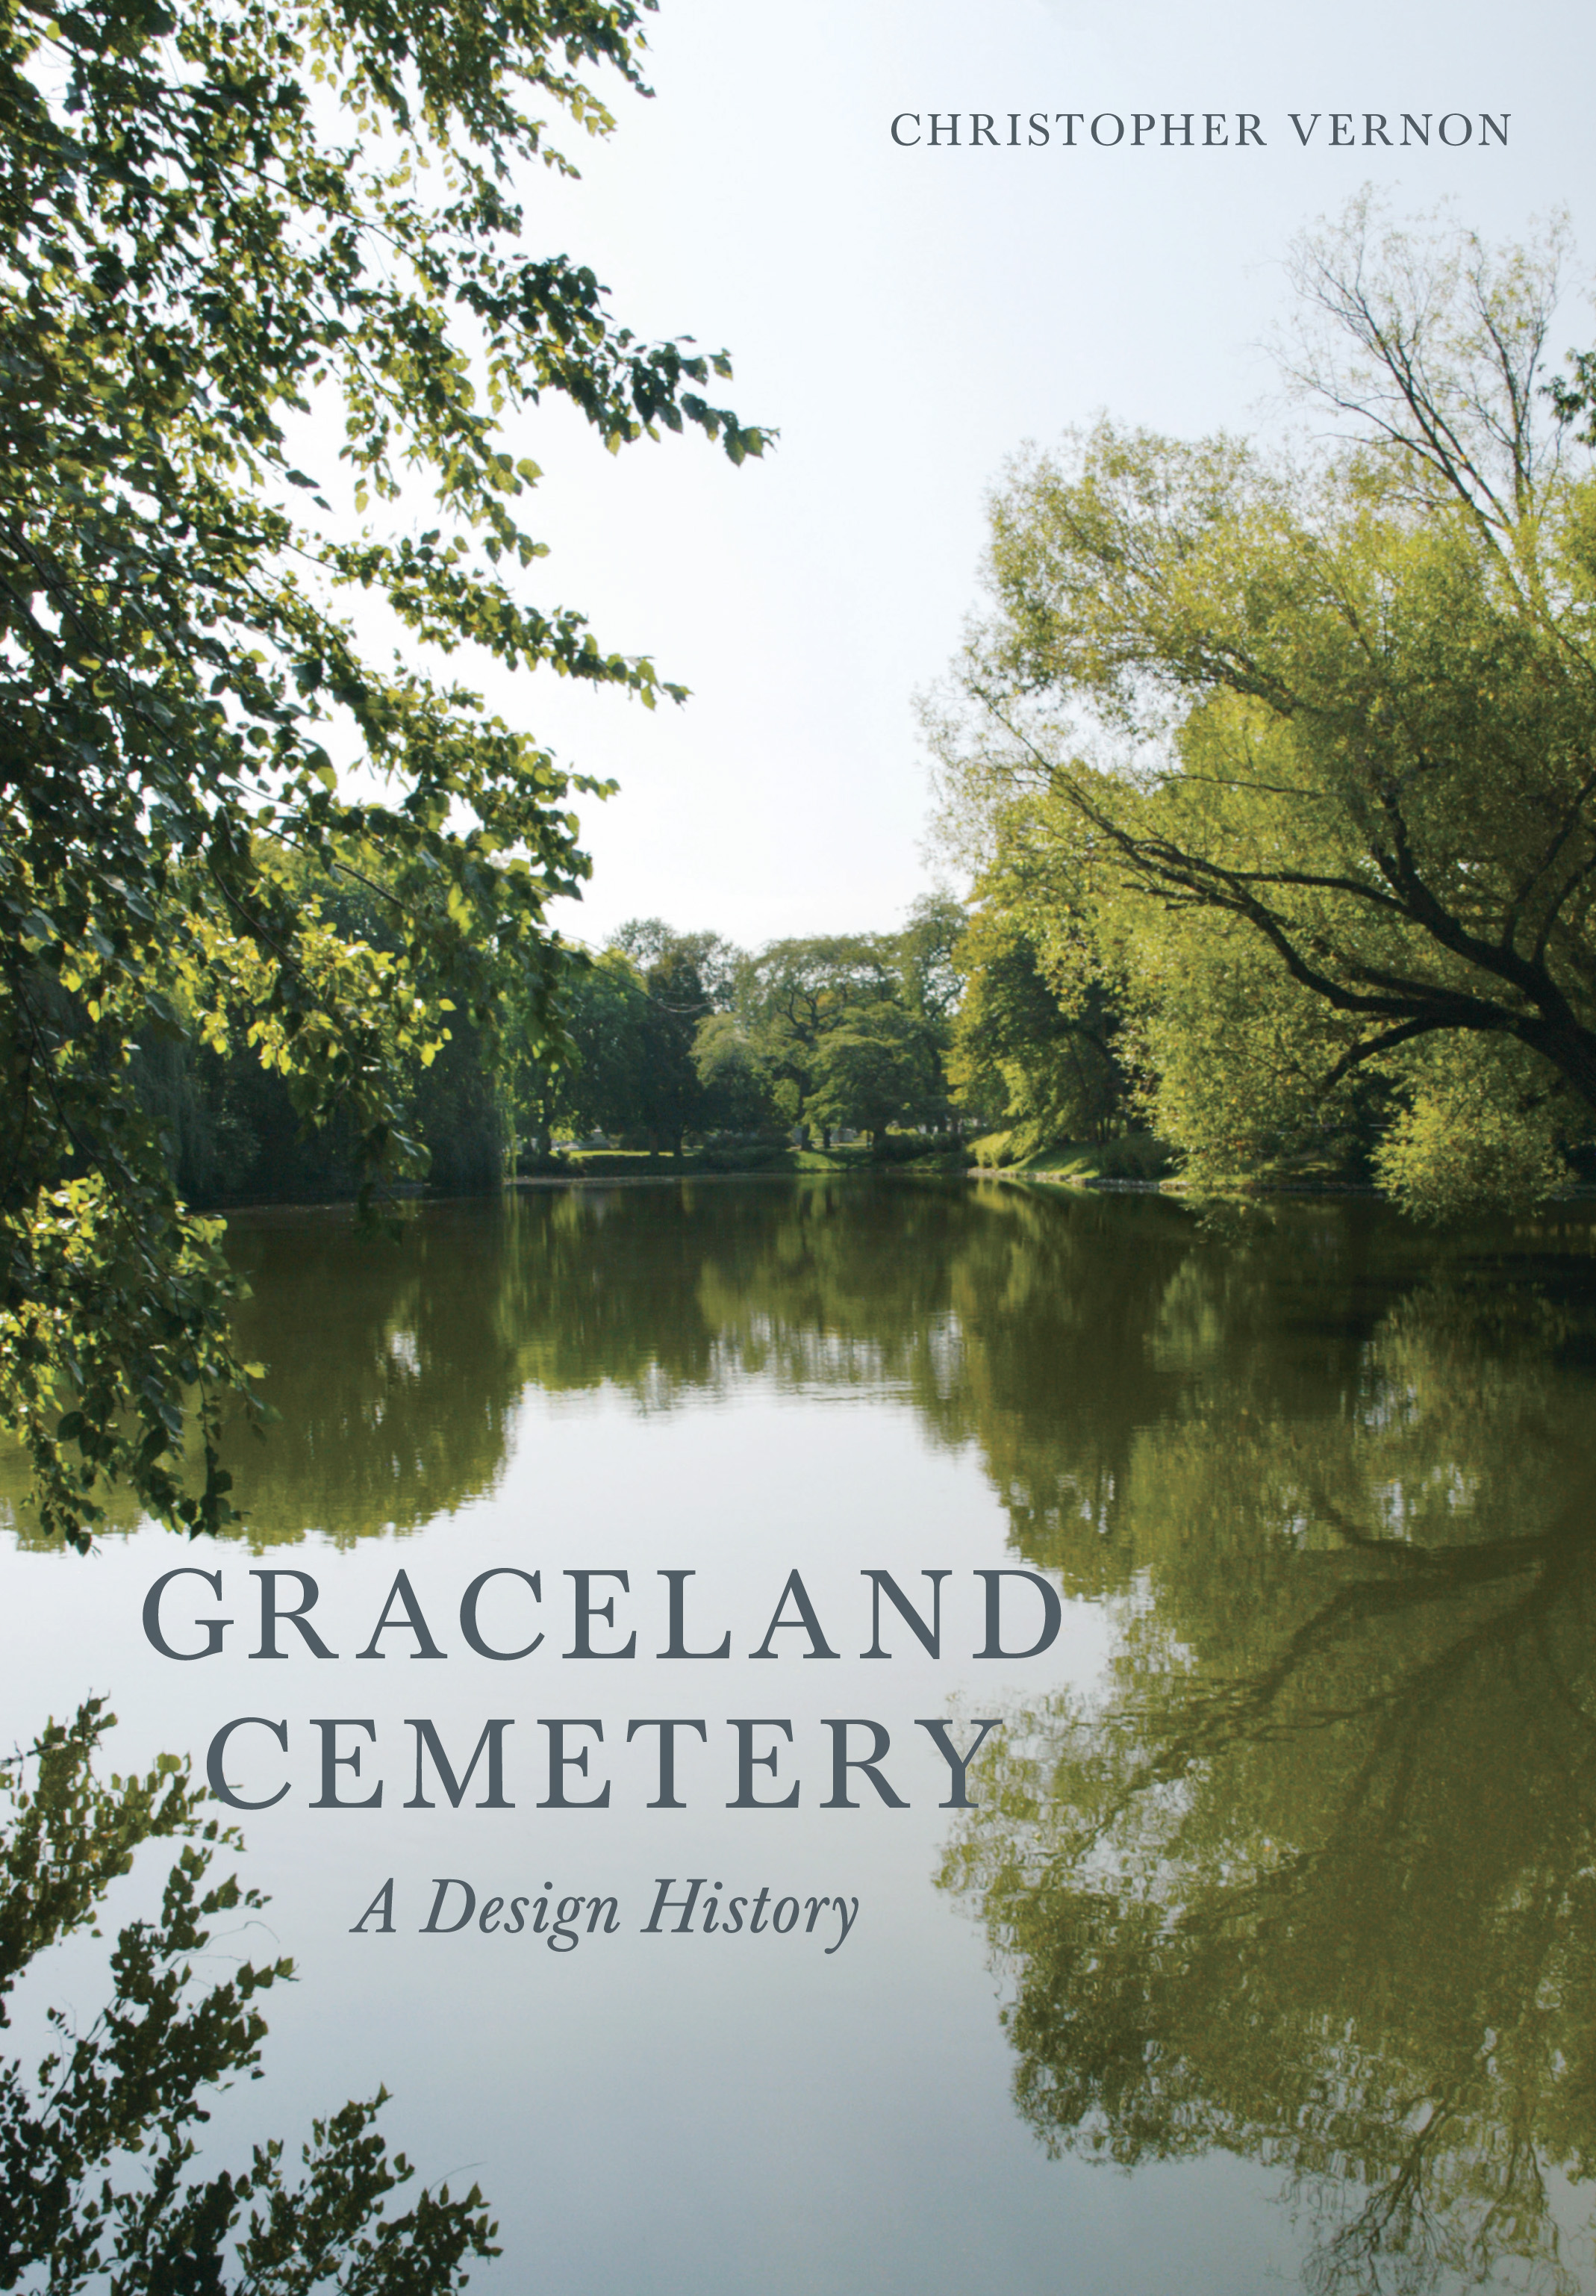 Riverside, Graceland Cemetery and William LeBaron Jenney